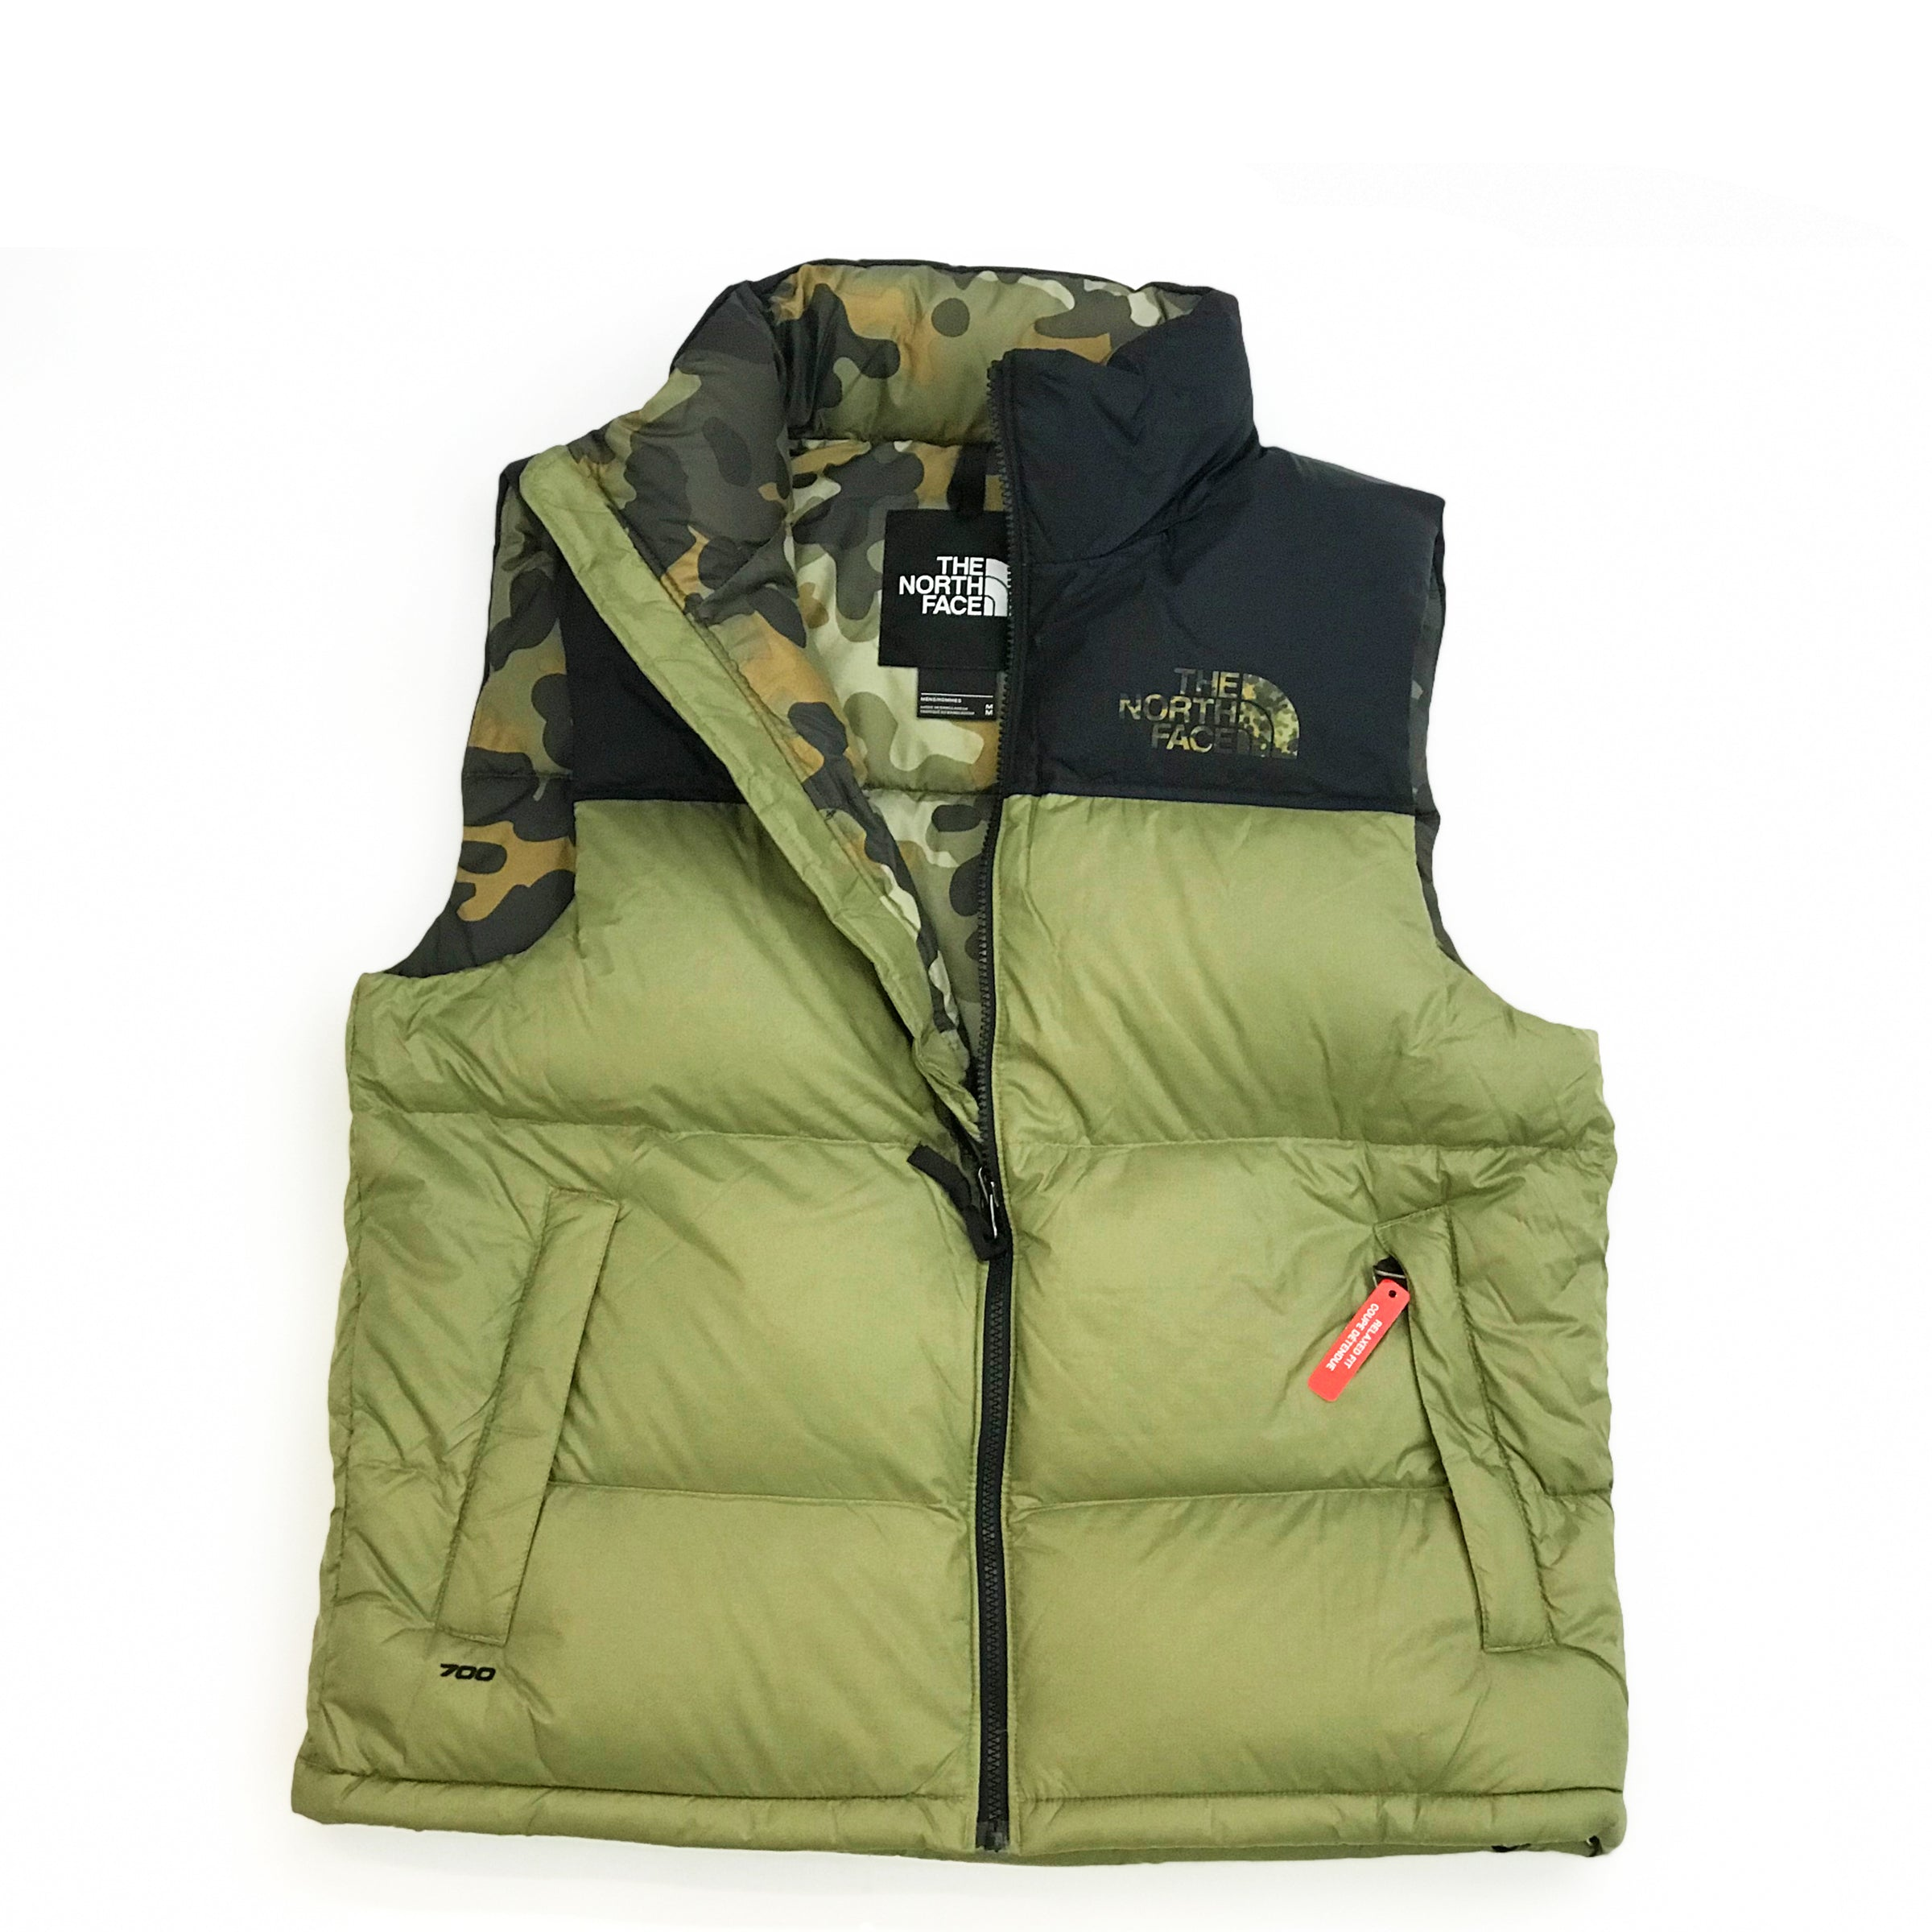 8f27d7dafe35d THE NORTH FACE 1996 RETRO NUPTSE VEST - TUMBLEWEED GREEN/NEW TAUPE GREEN  MACROFLECK PRINT